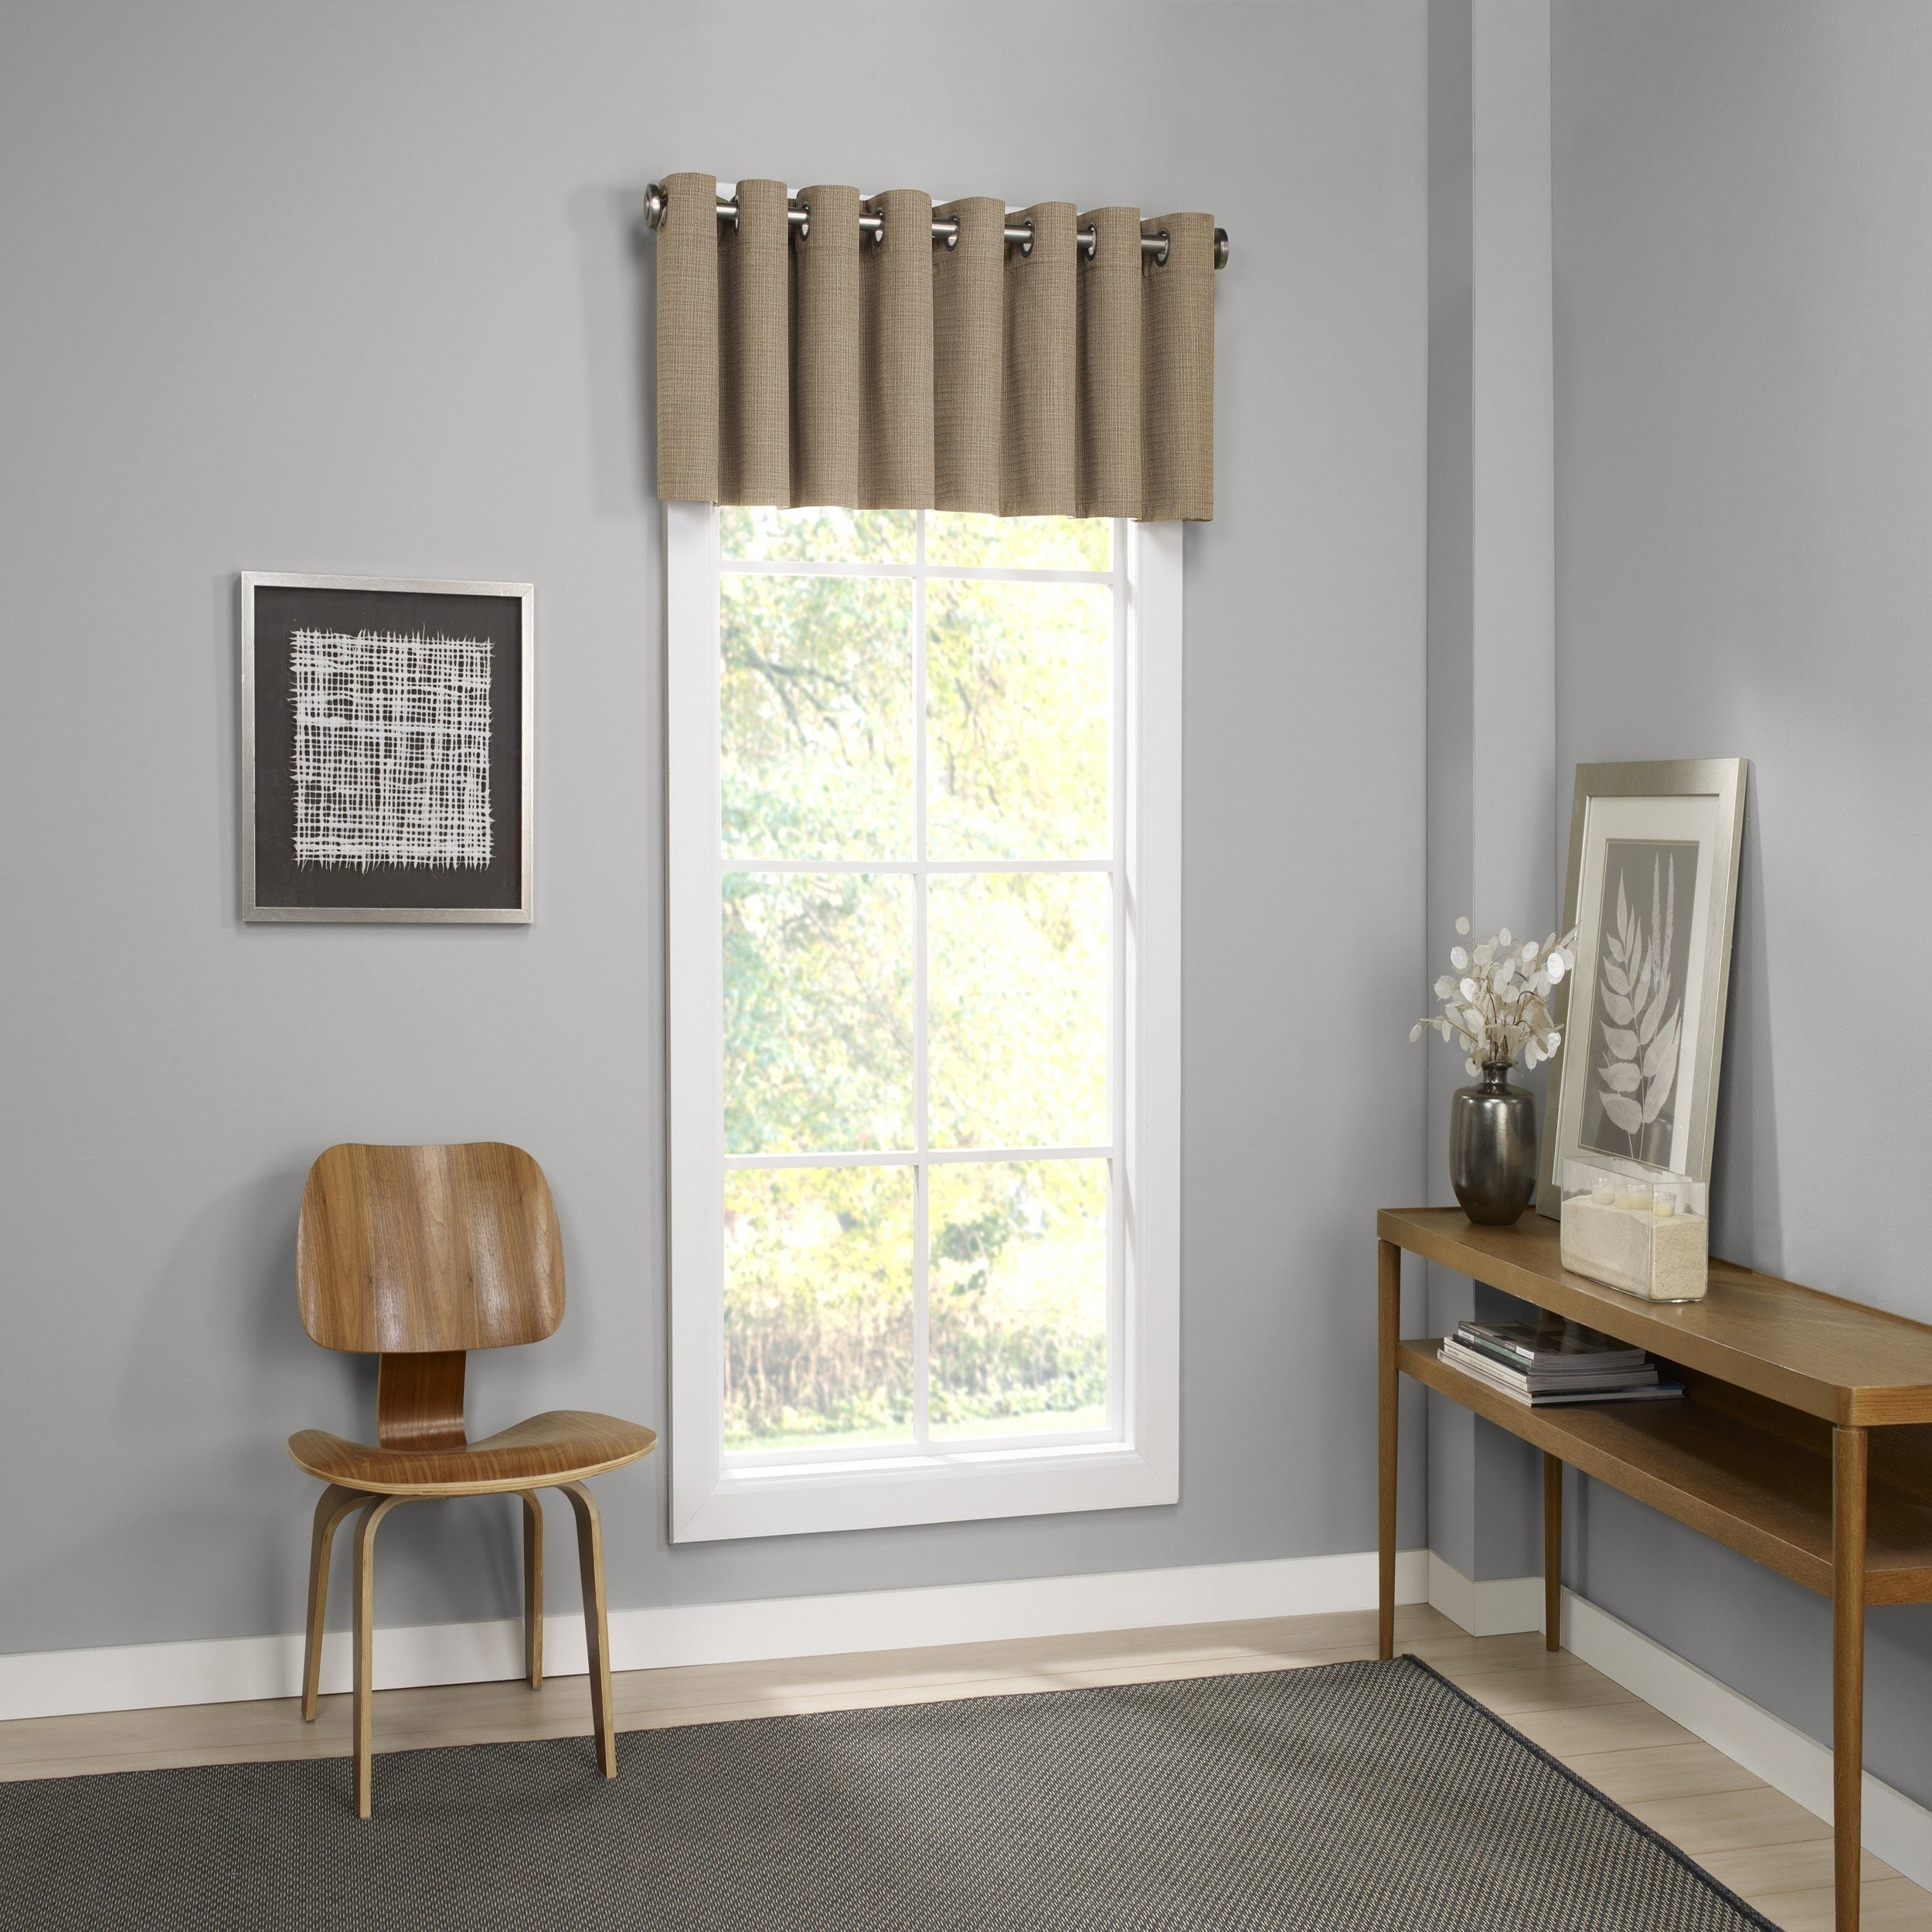 Details About Eclipse Palisade Blackout Grommet Window Valance – 52x18 For Eclipse Trevi Blackout Grommet Window Curtain Panels (View 19 of 20)